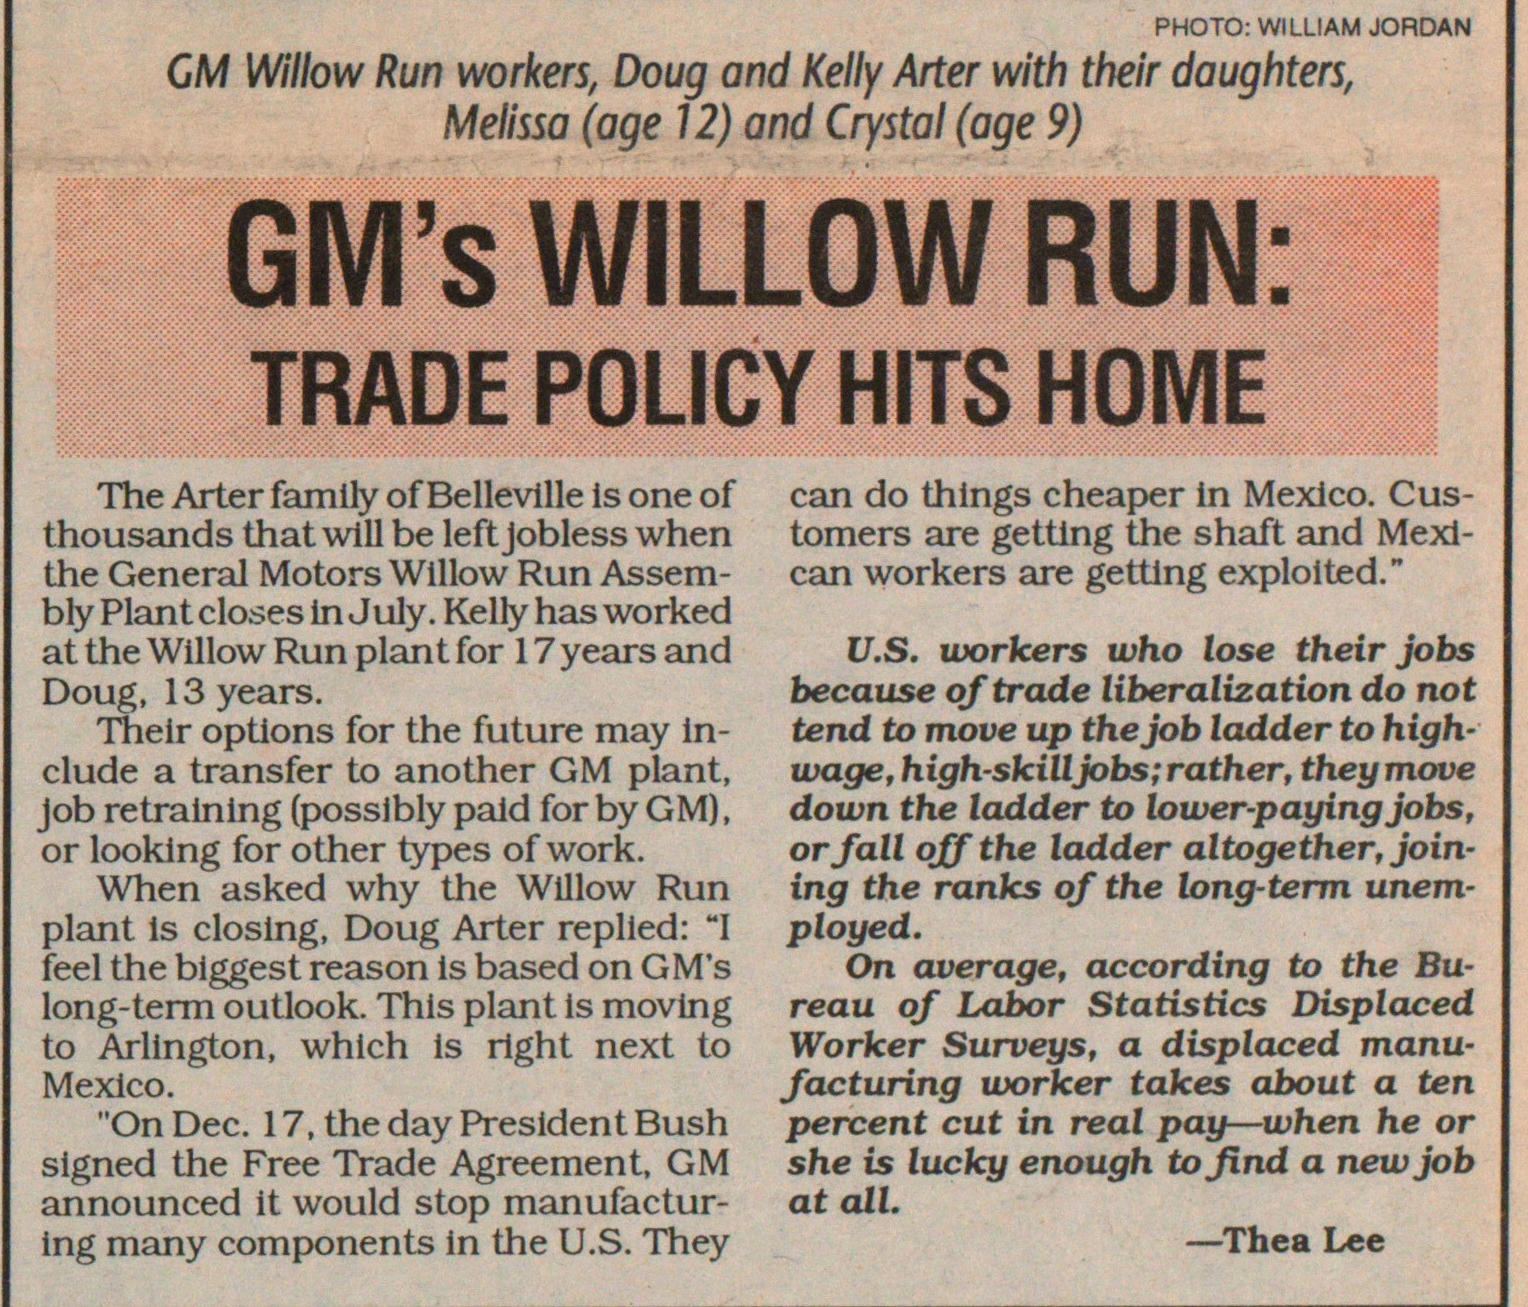 Gm's Willow Run: Trade Policy Hits Home image